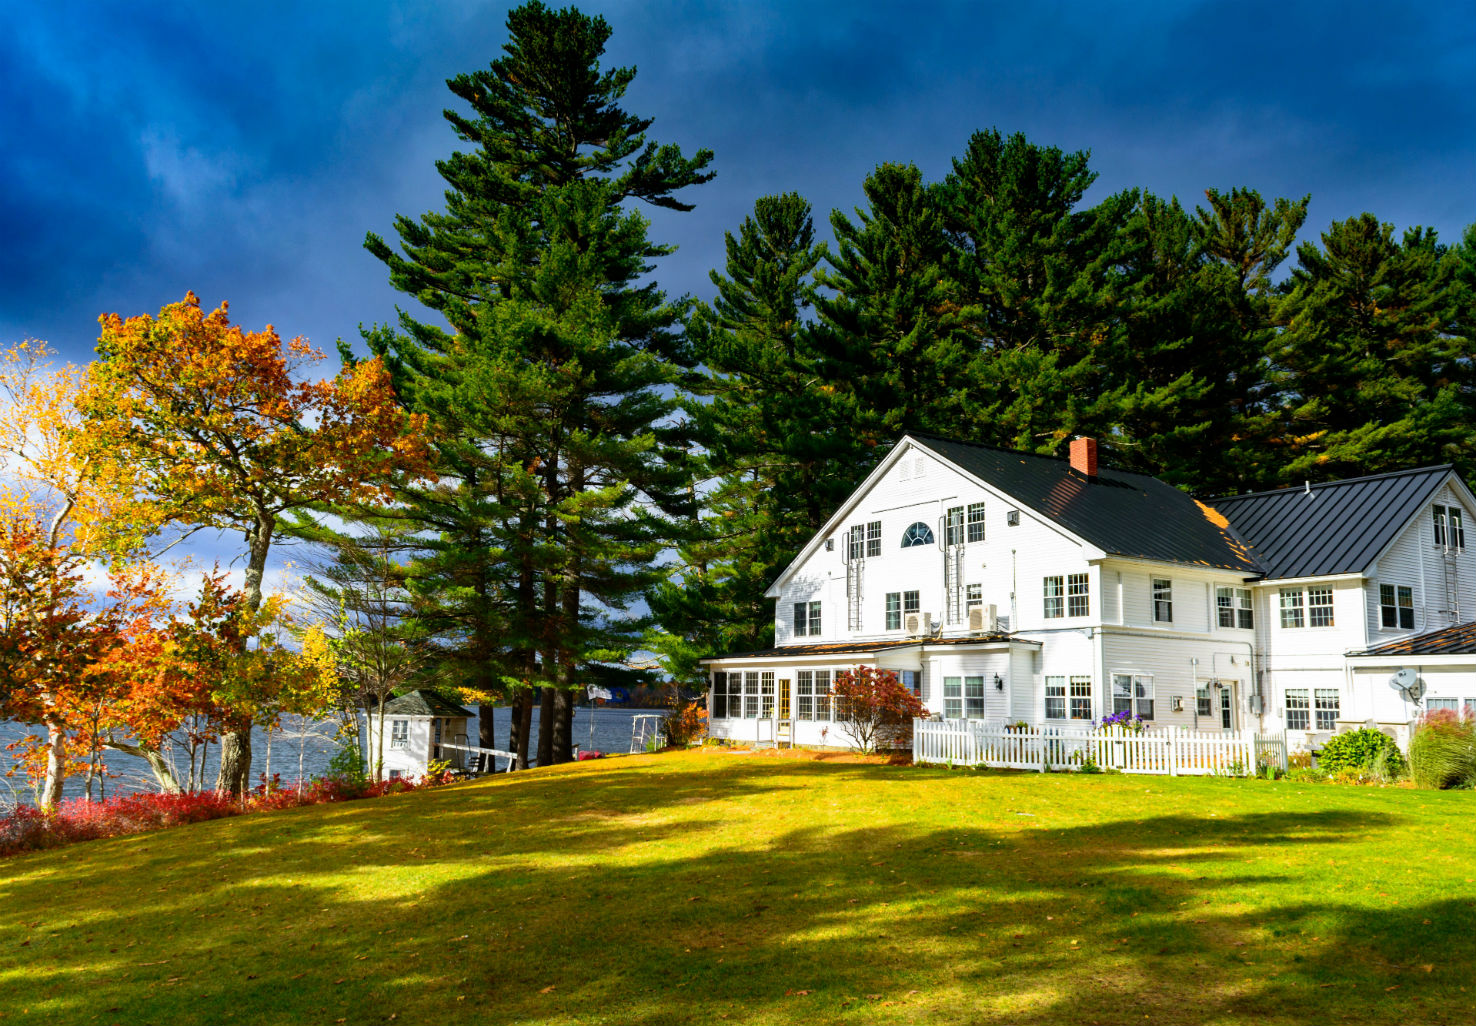 Exterior of the Wolf Cove Inn during the fall